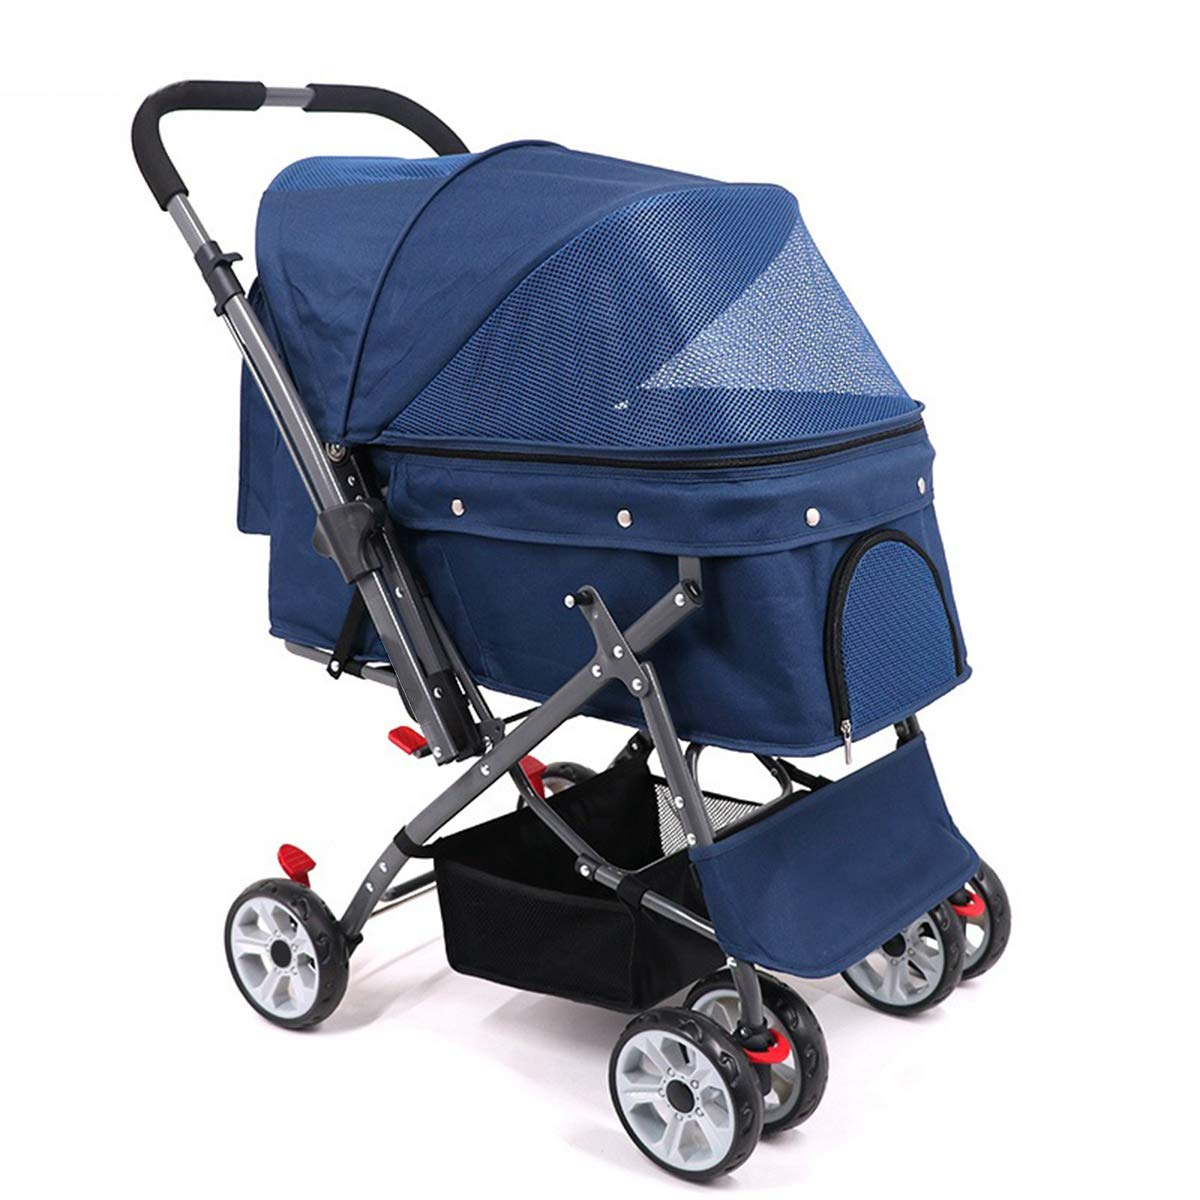 bluee Large Luxury Pet Trolley,Pet Dog Out Baby Stroller Cat Car One-Click Folding Quick Inssizetion